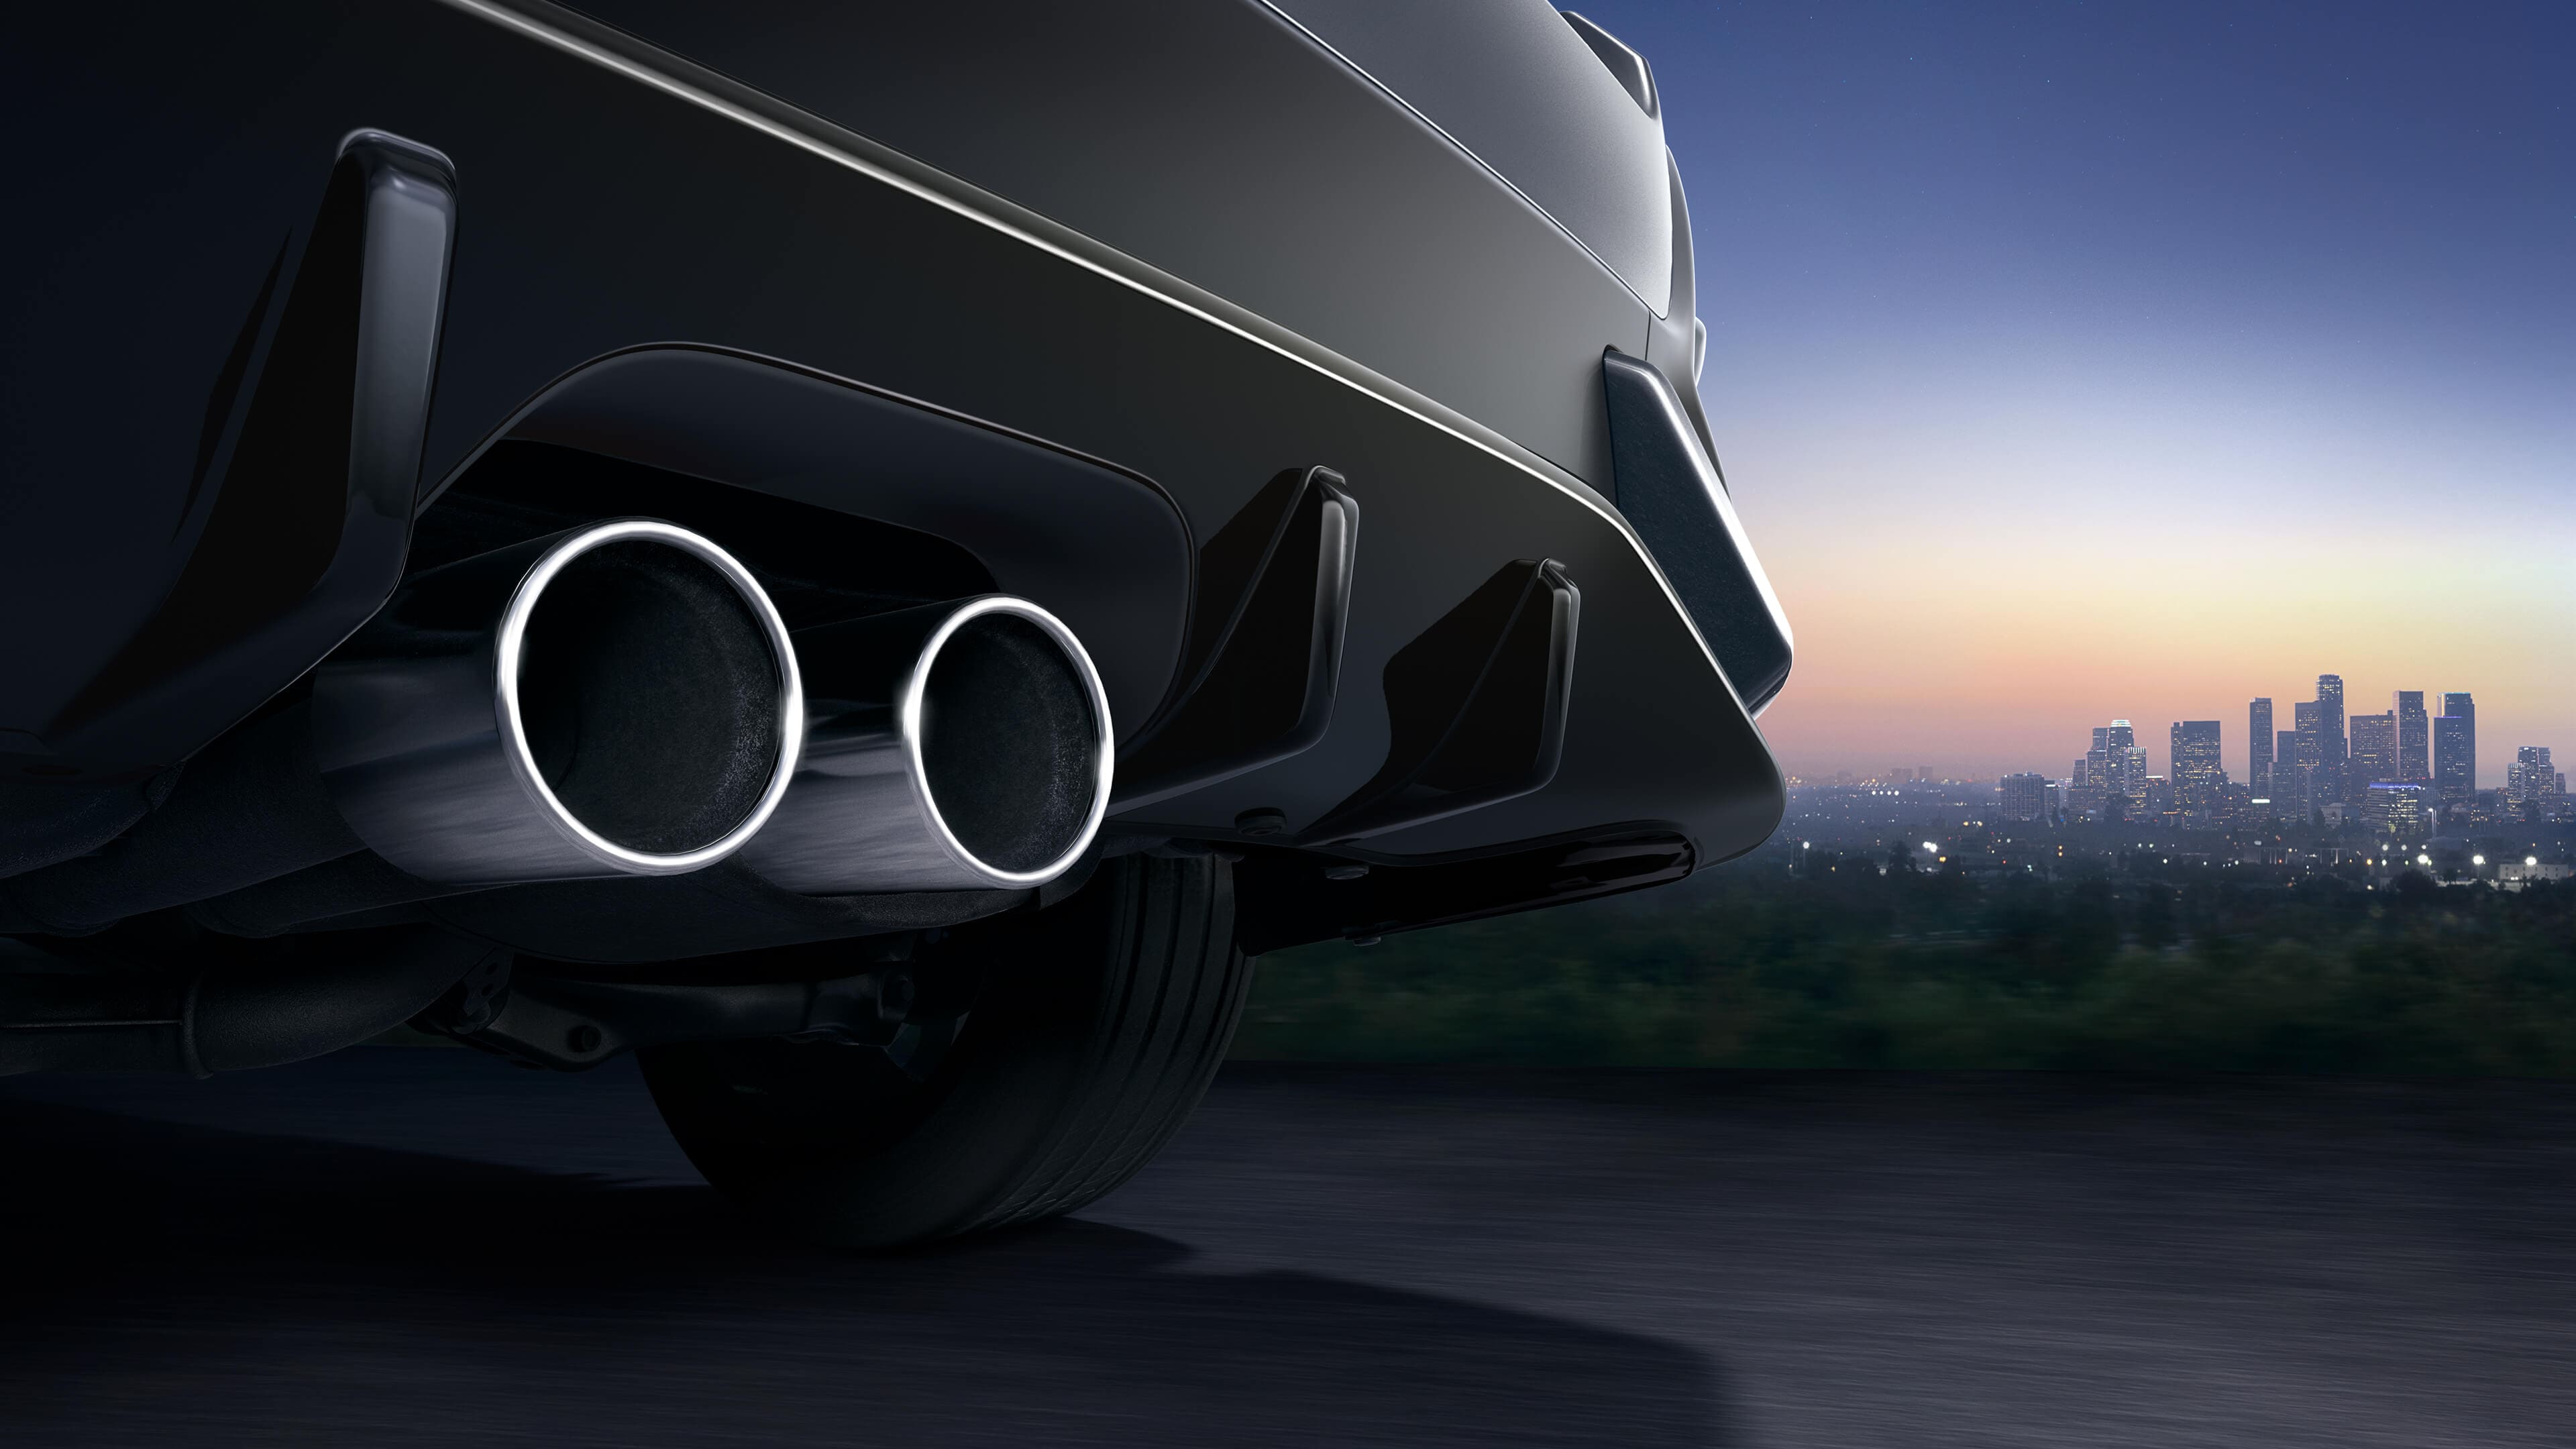 Exhaust of Civic Hatchback with city in background